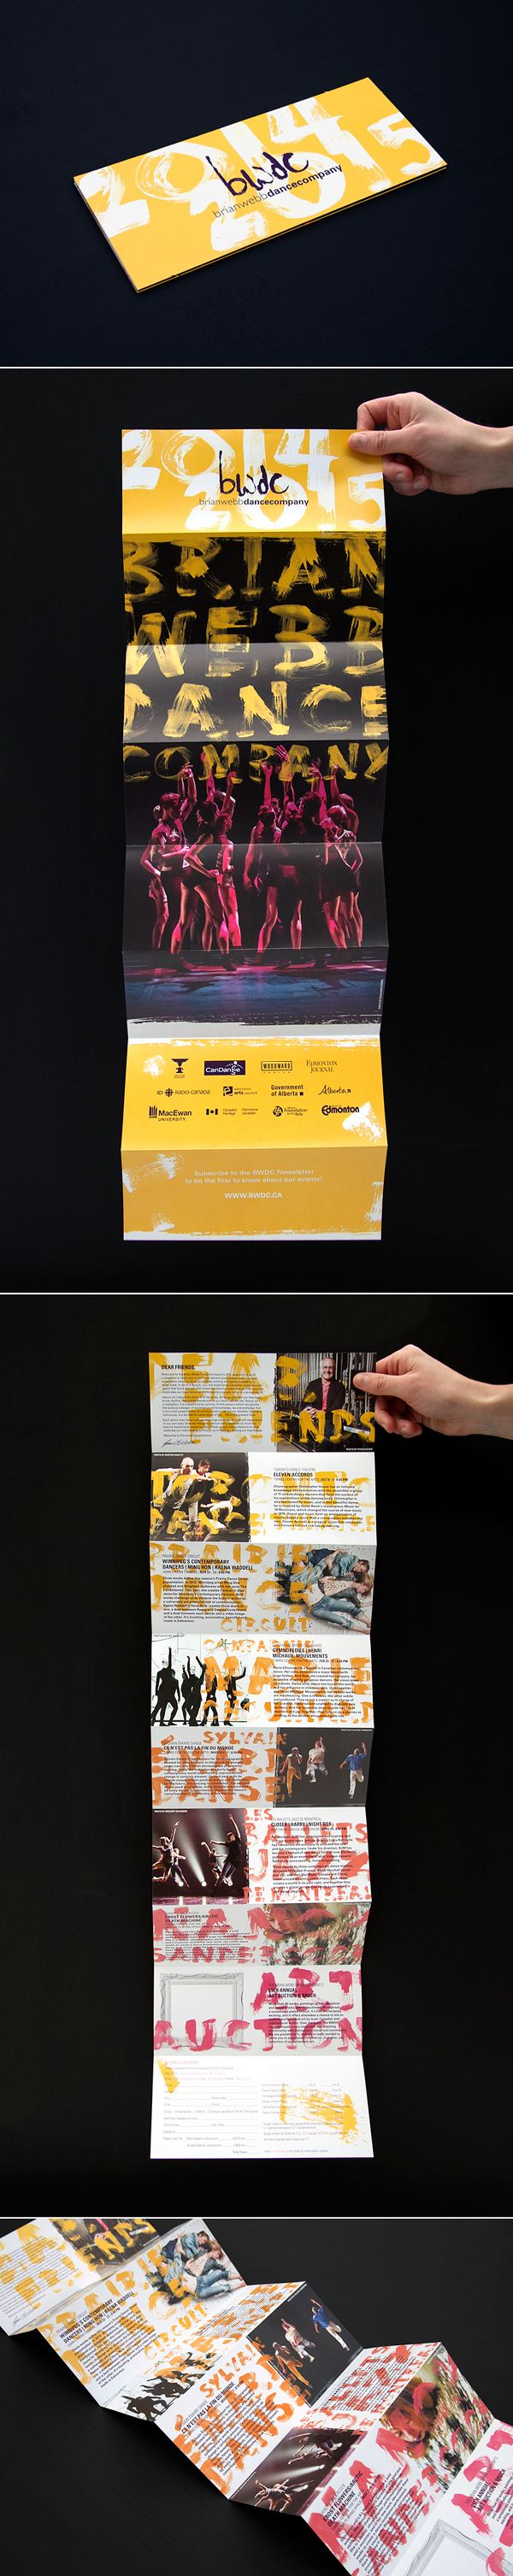 Brian Webb Dance Company 2014/2015 Season Creative for Woodward Design - Rachel Beyer - Features bright colours and hand rendered type. The brochure folds out showcasing each of the 6 dance companies. The back side showcases the dancers from Les Ballets Jazz de Montréal in a full size poster.